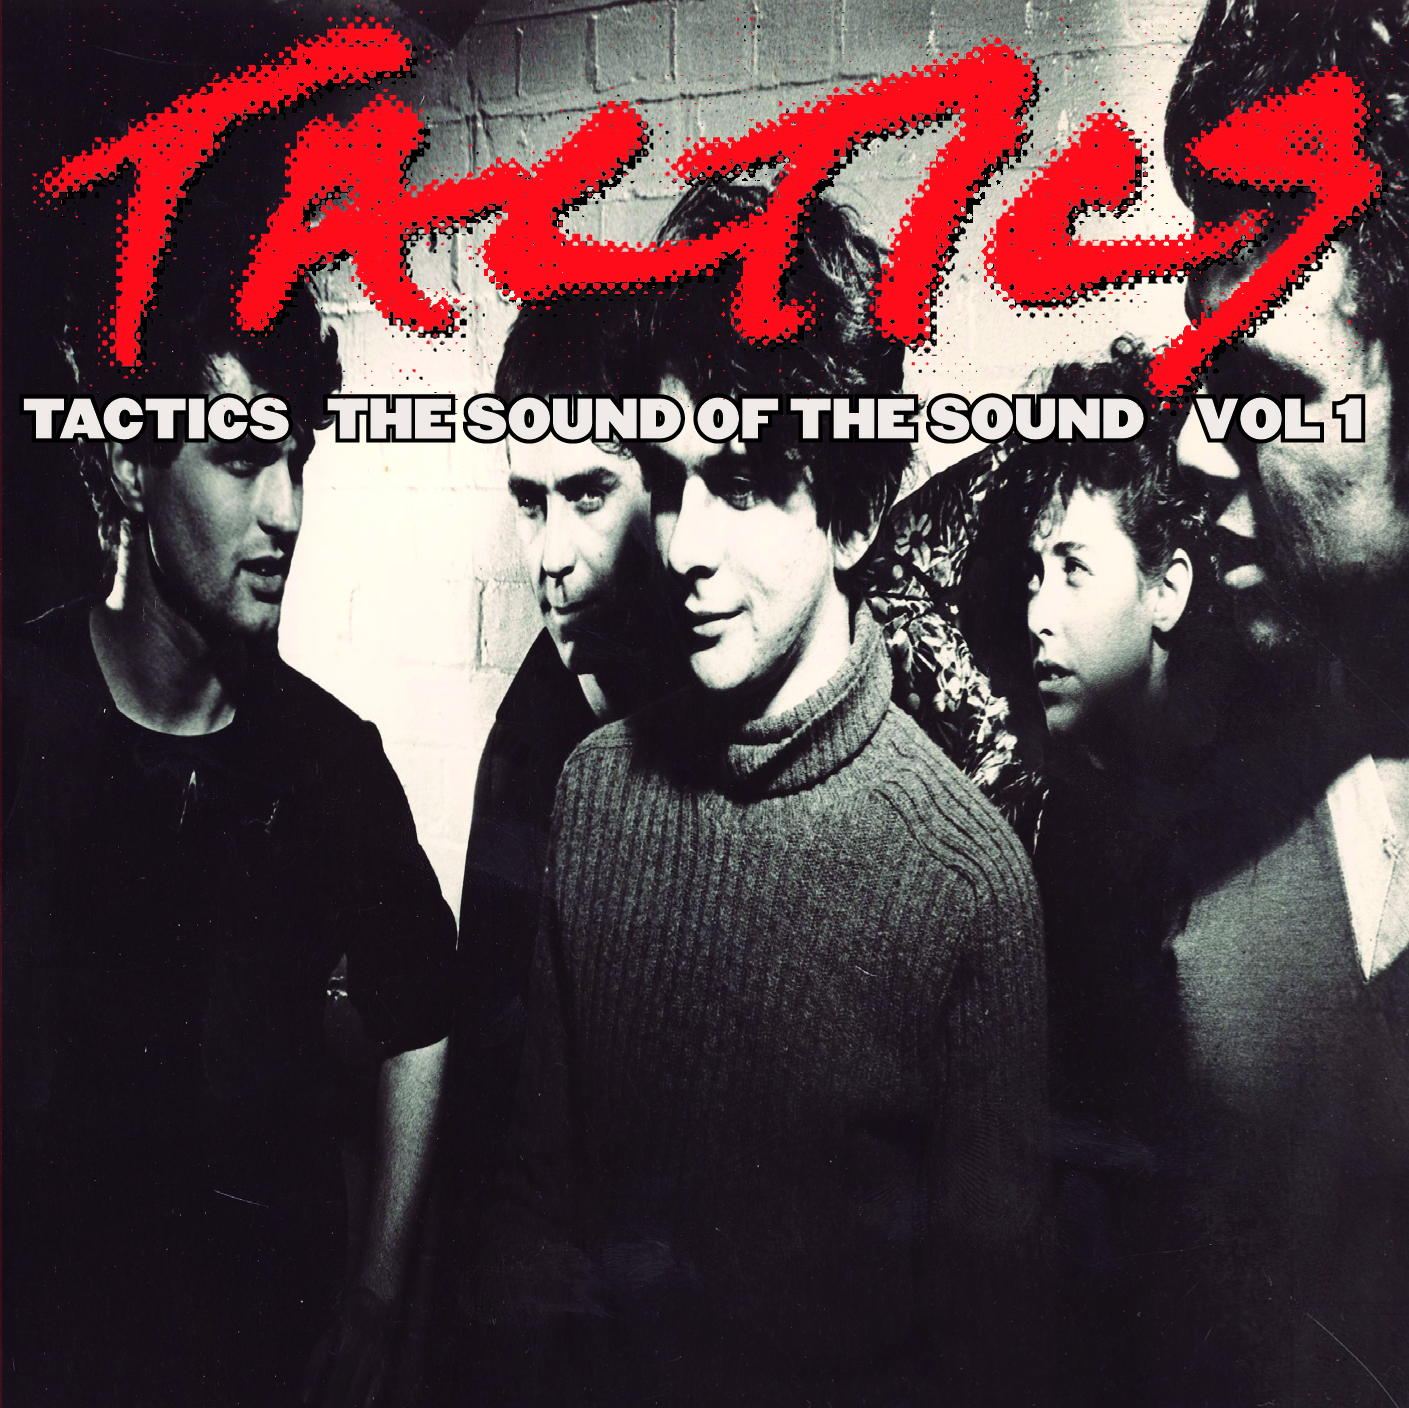 Tactics - great aussie band - sound of the sound